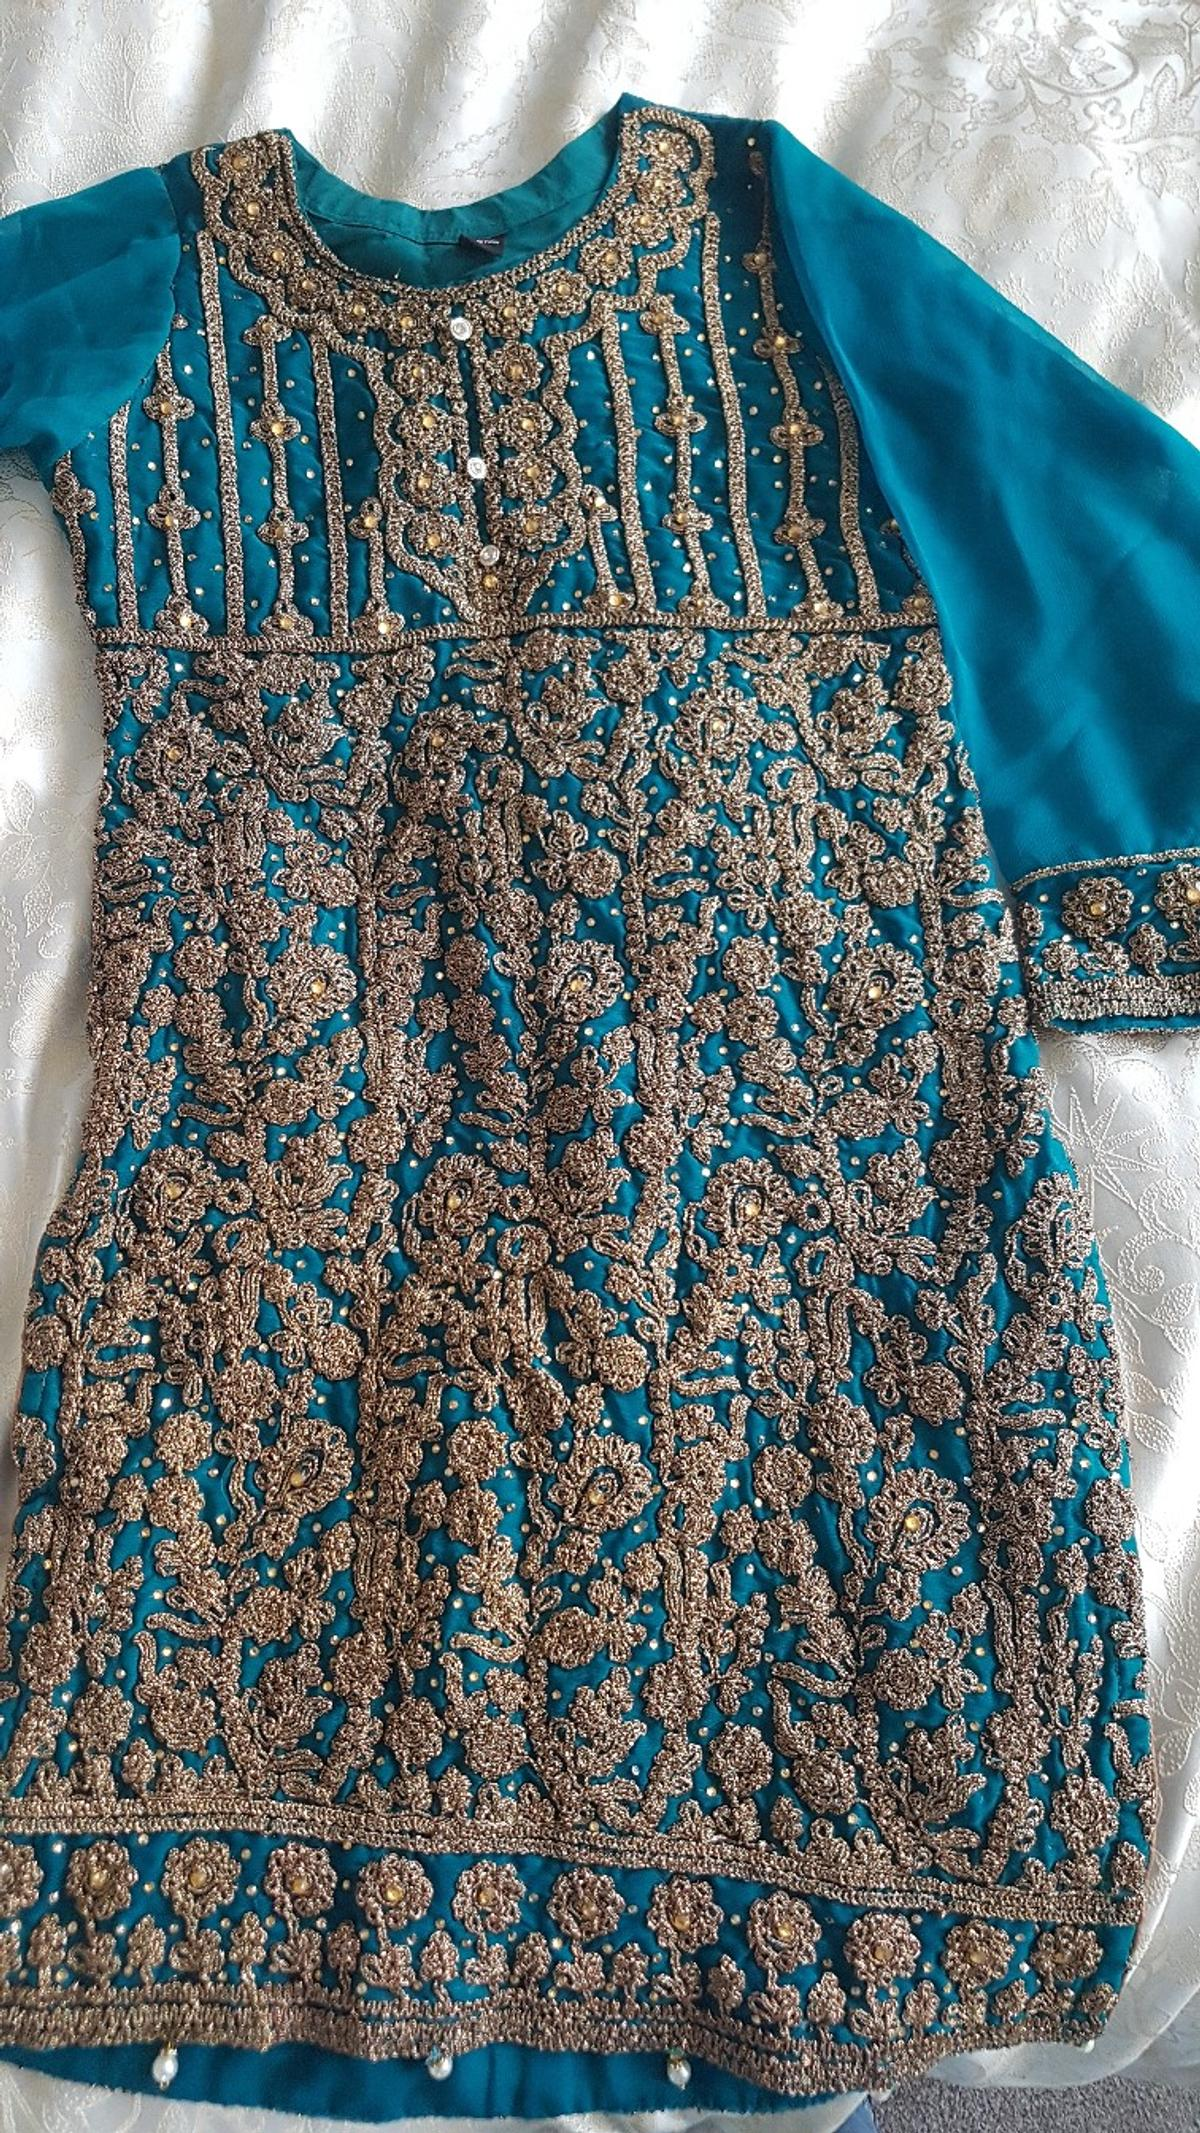 green beautifully detailed outfit prefect for an occasion size small worn only once for a short amount of time